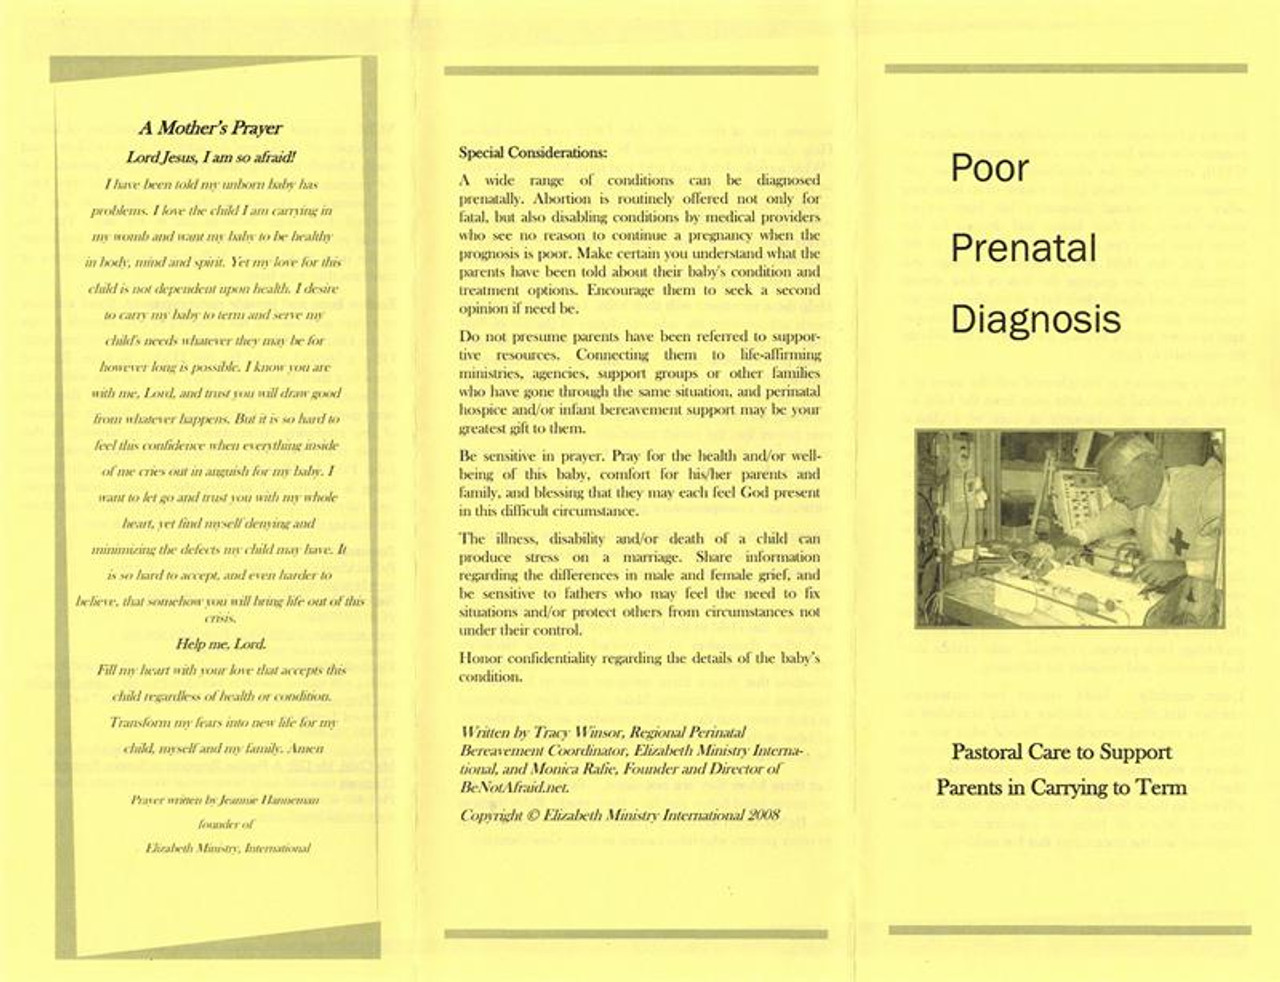 Poor Prenatal Diagnosis Flyer